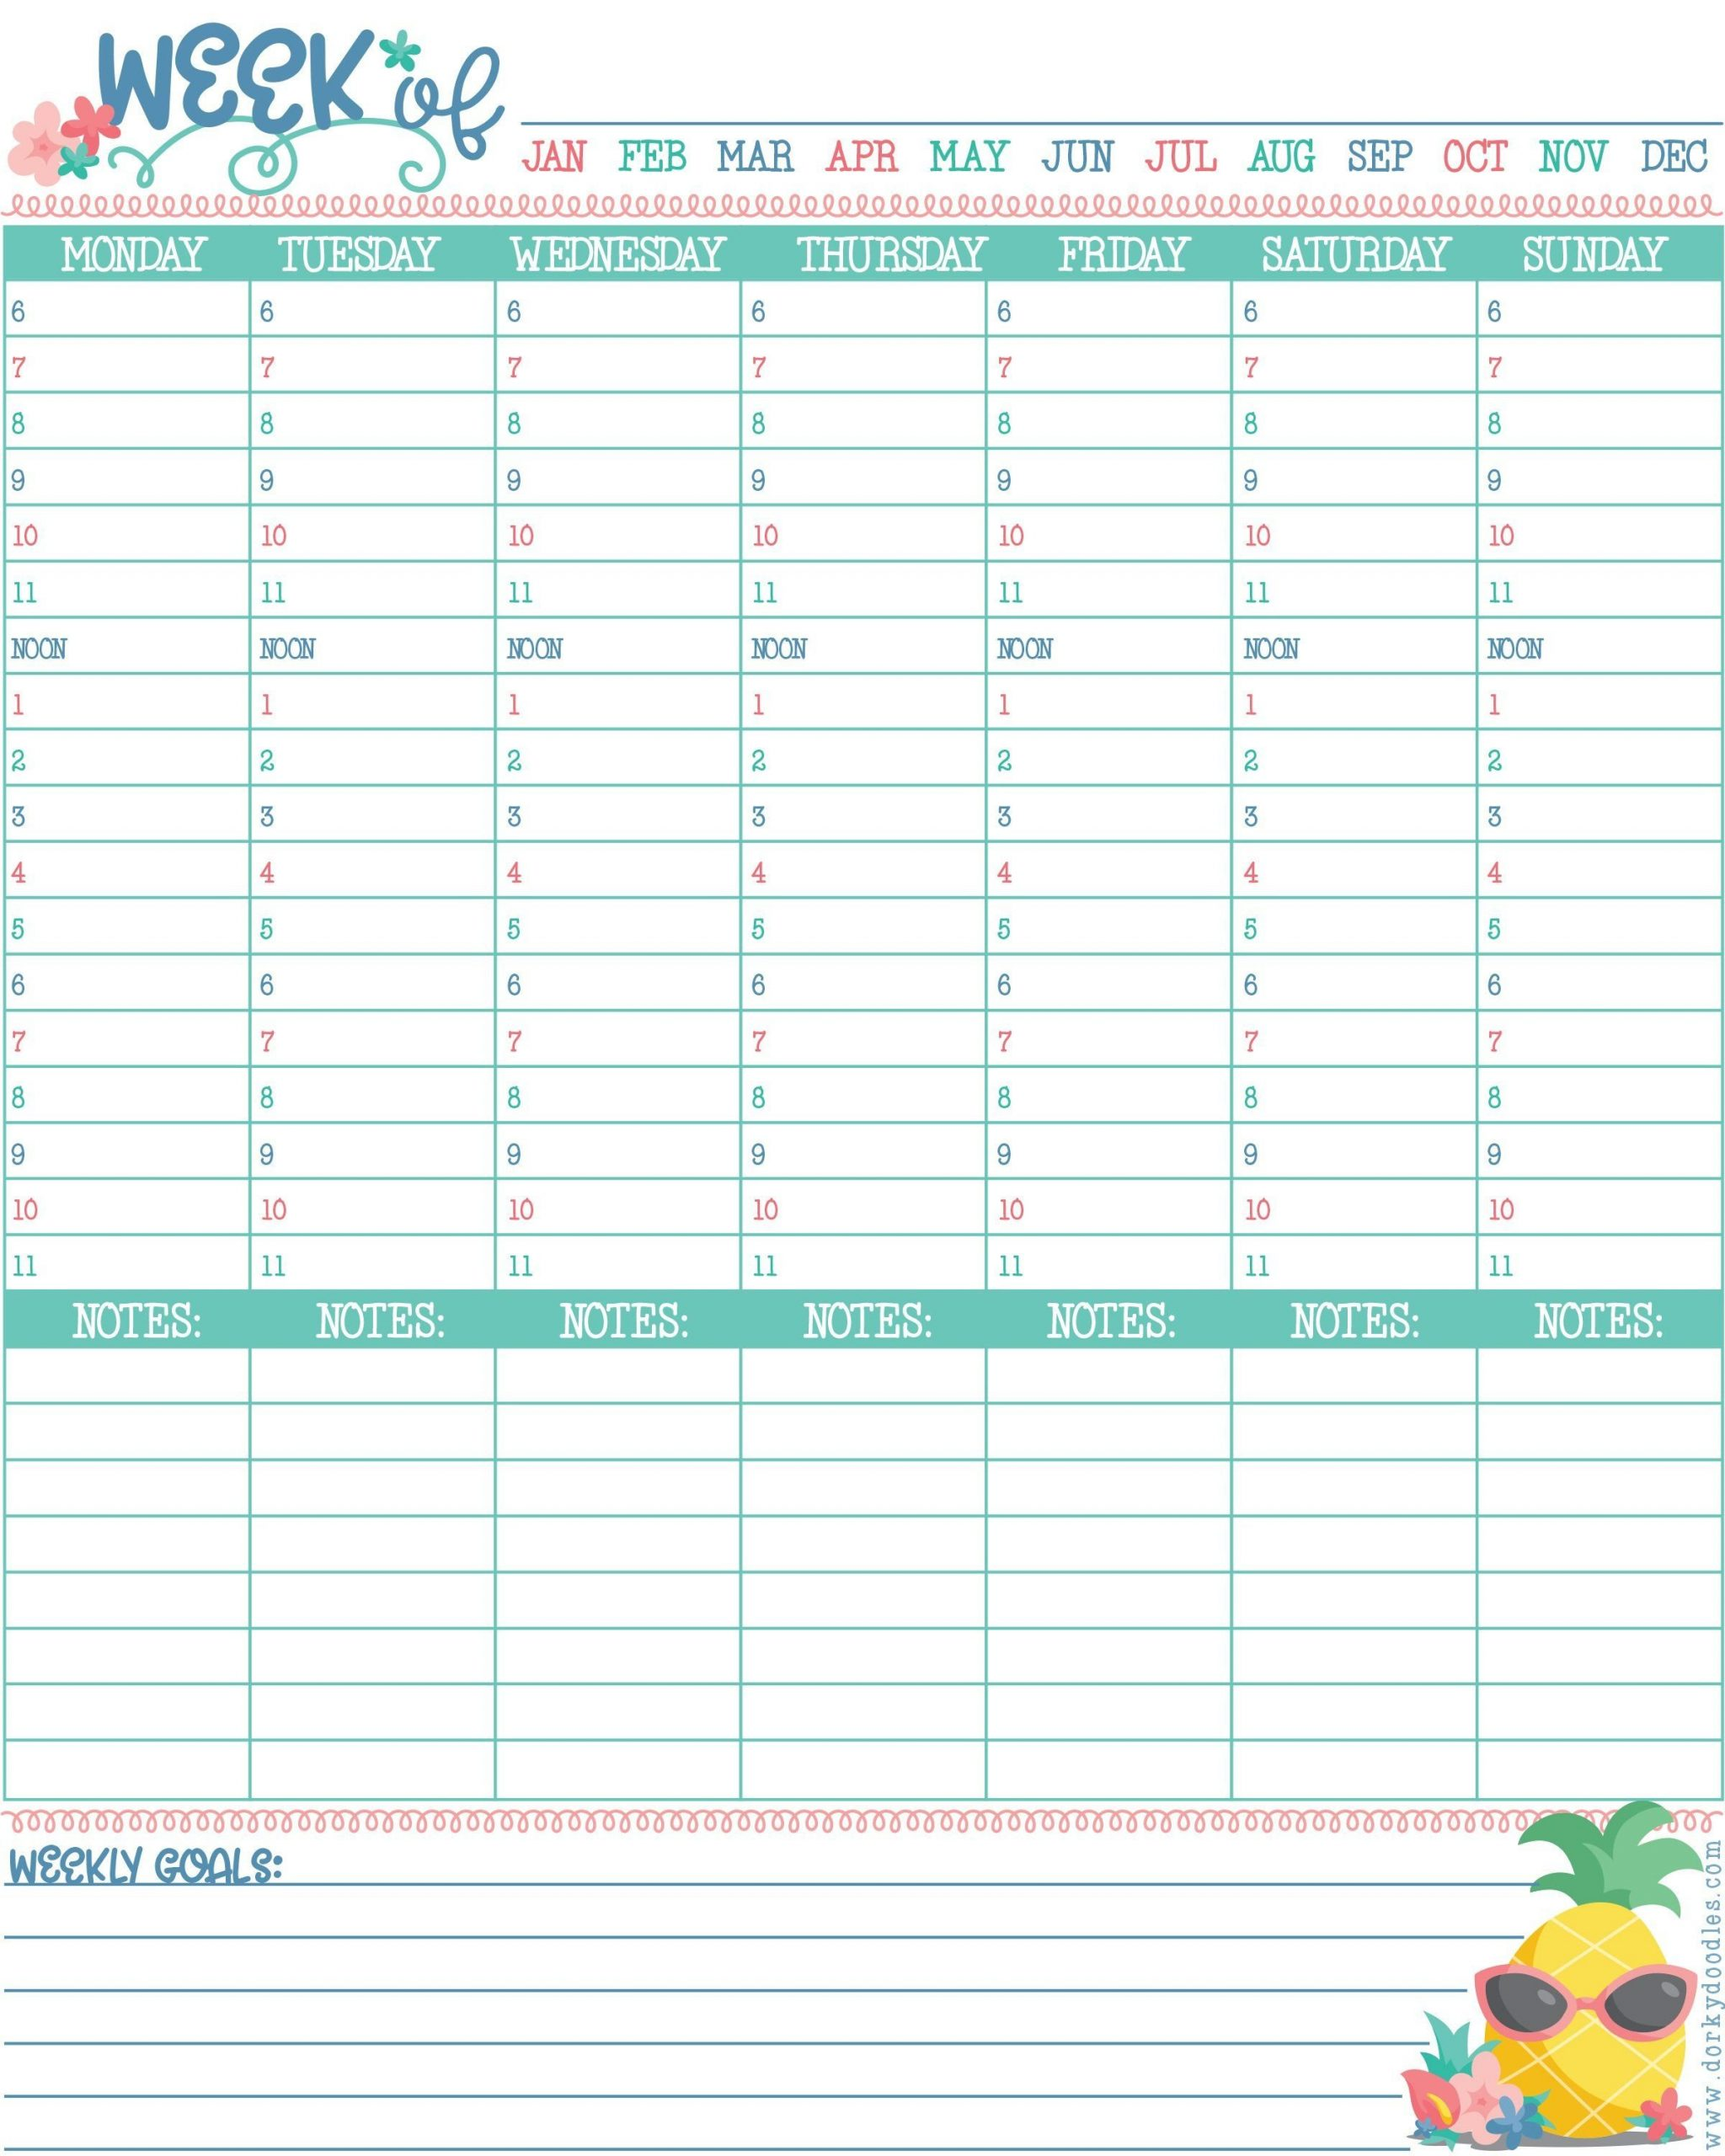 Hourly Planner Printable | Hourly Planner, Printable Free Copy Of Daily Hourly Calendar